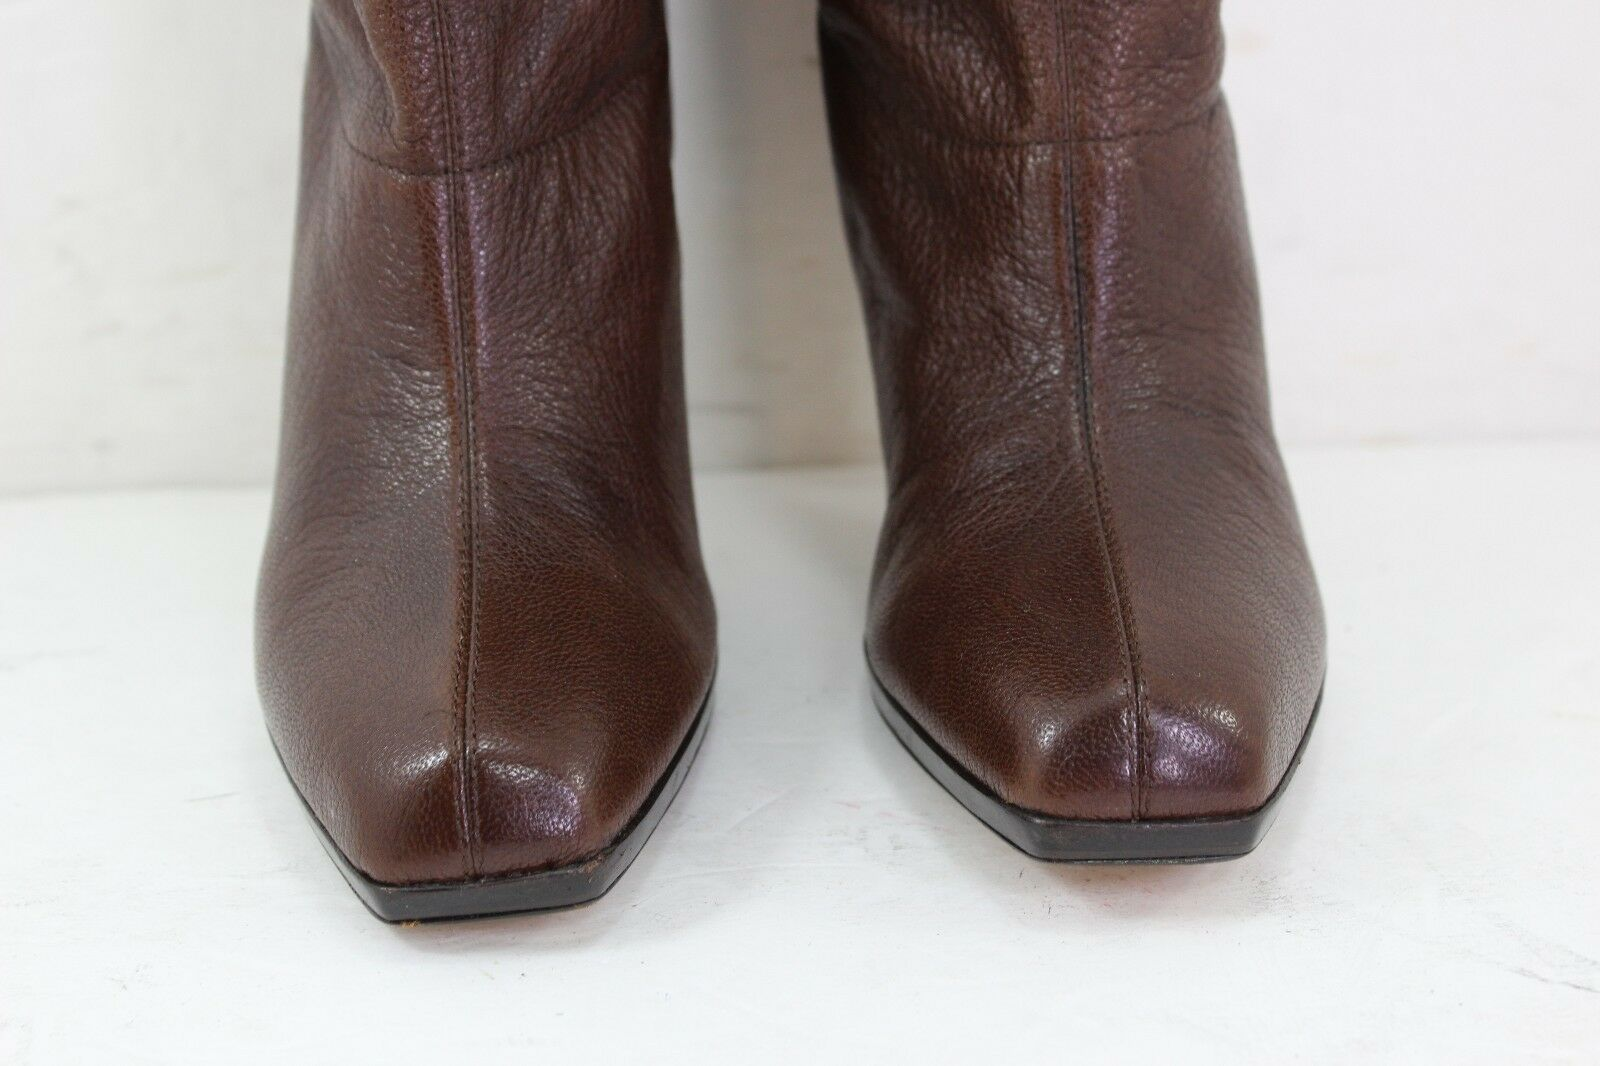 COLE HAAN GALI COLLECTION Stiefel MID-CALF SZ SZ SZ 7 B BROWNS IN GREAT CONDITION 299ccb